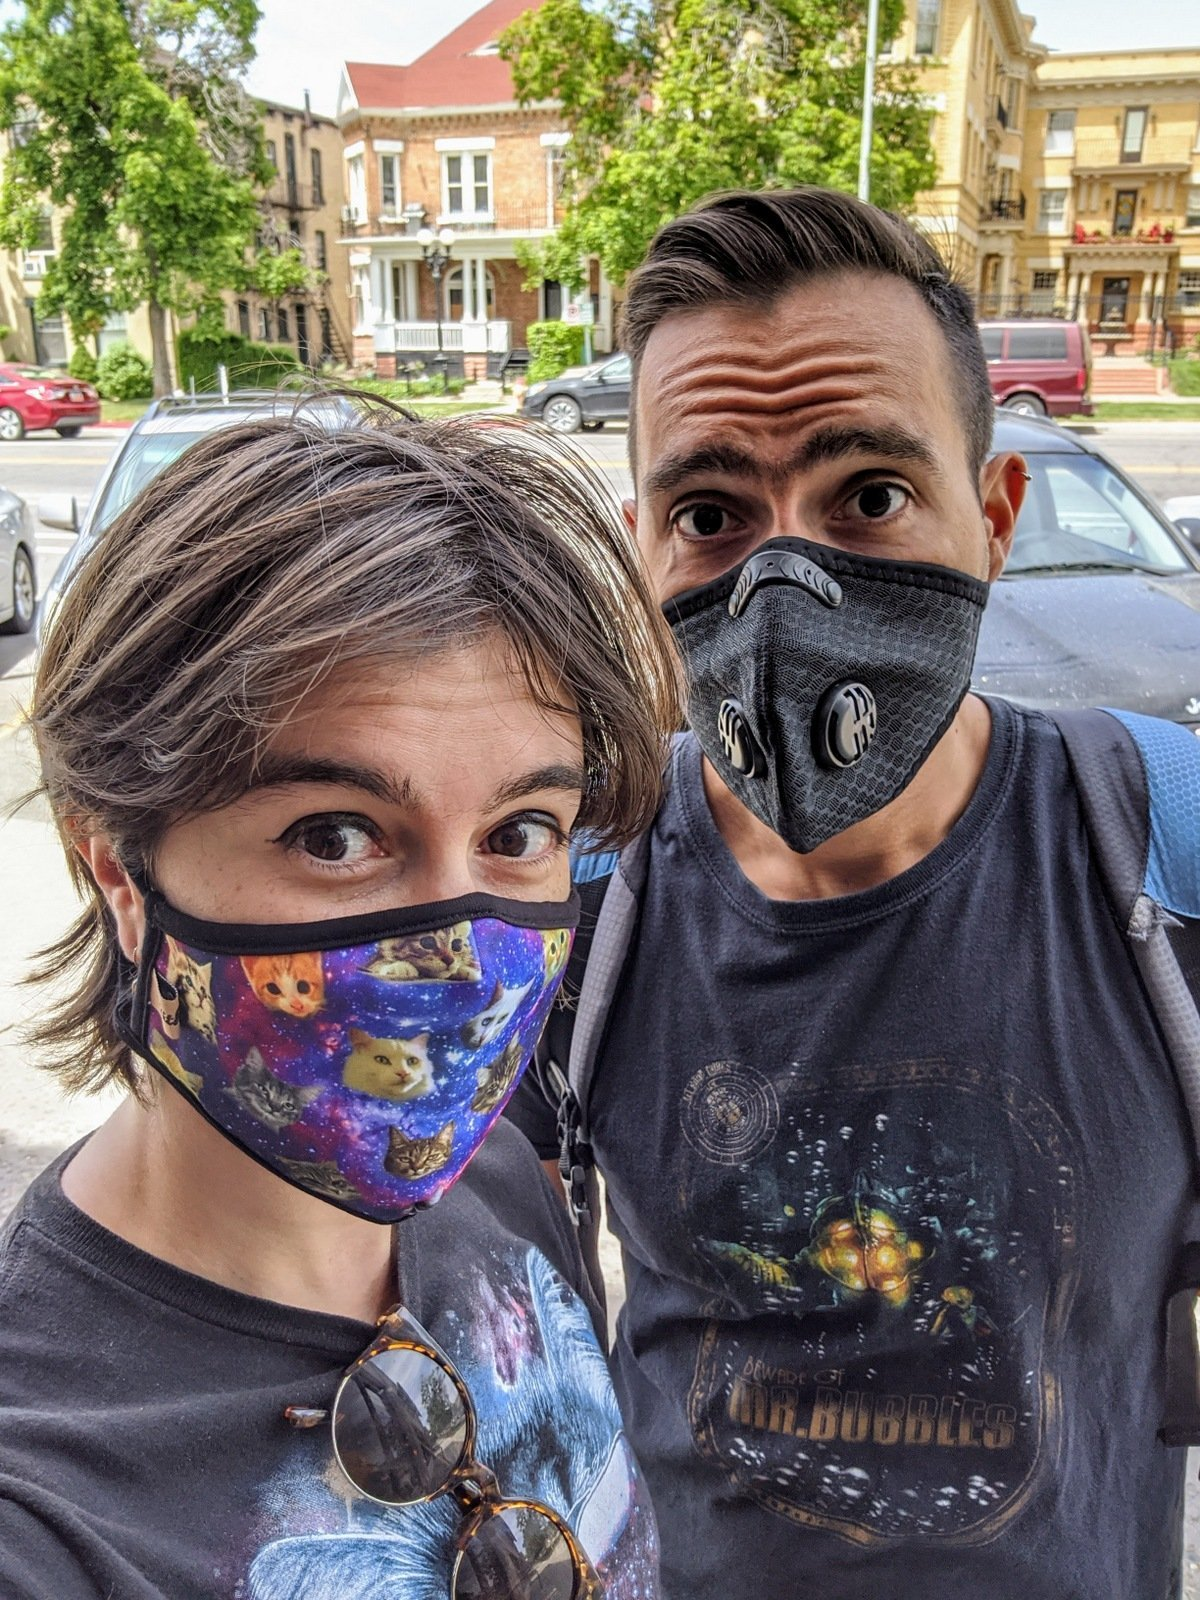 man and woman with masks on. she has a cat mask, he has a black N95 mask.